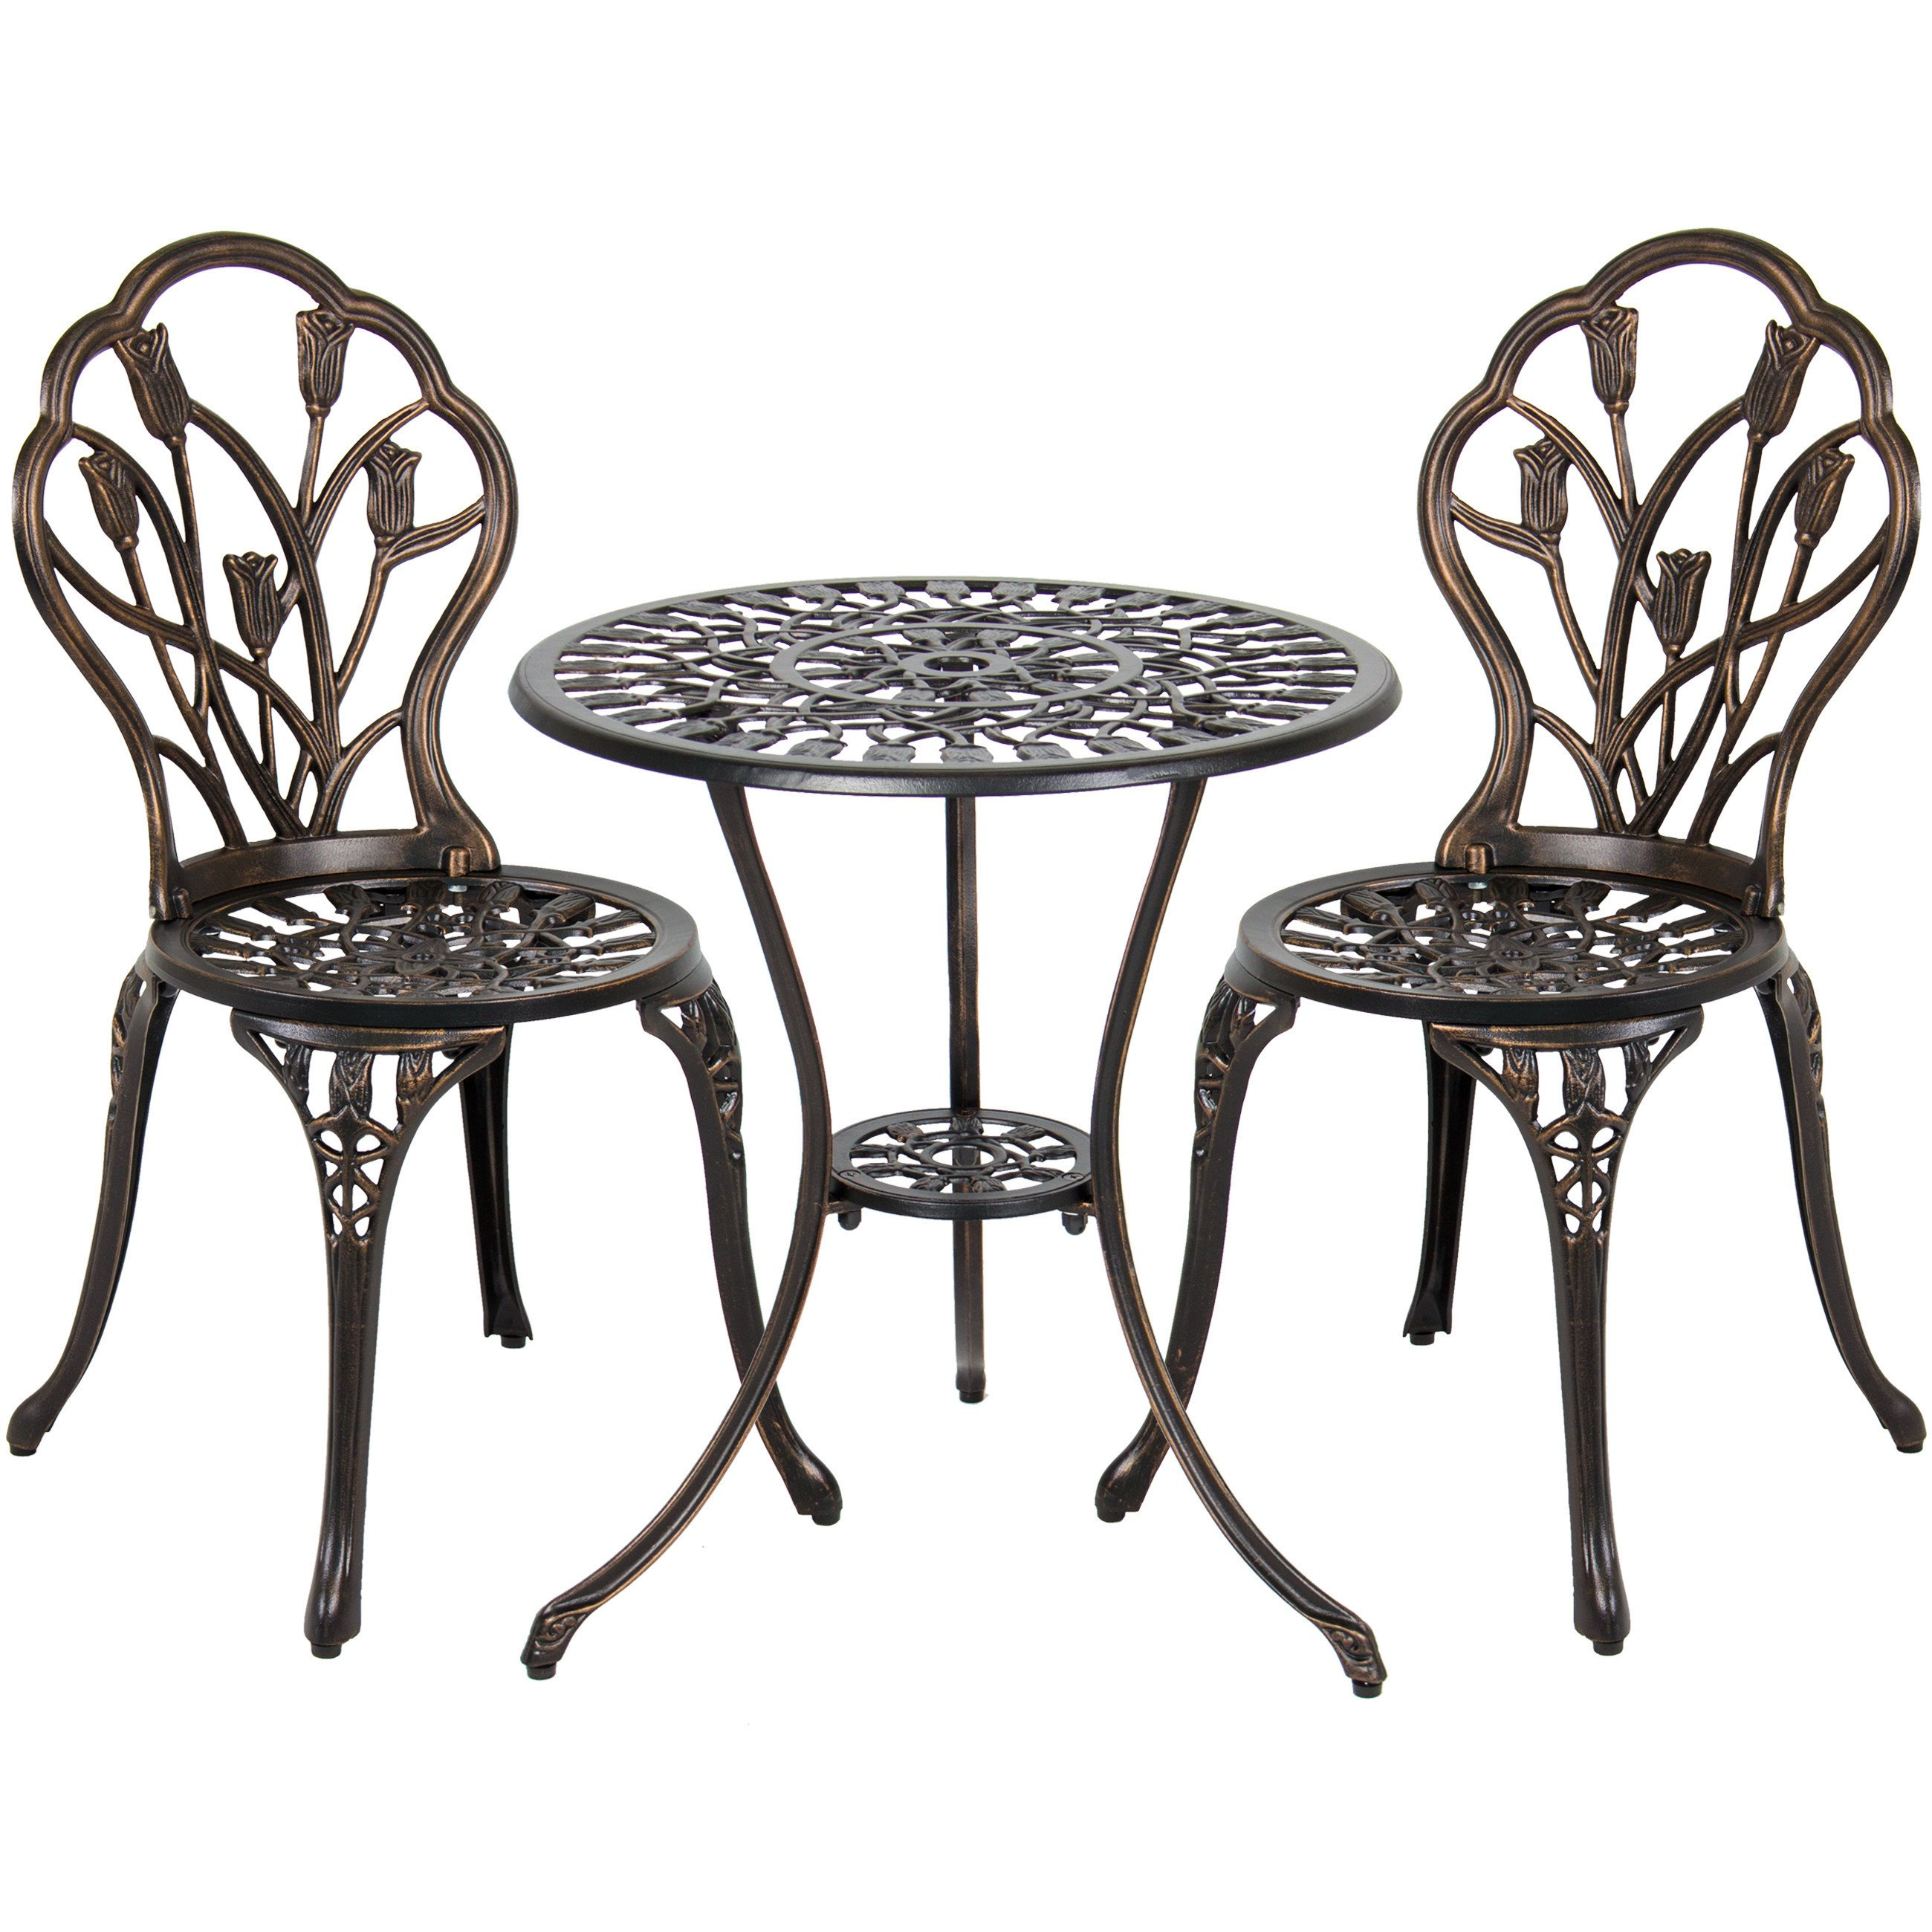 side coffee tables belle small outdoor table design ideas for soothing accent teal cabinet cool bedroom end lamps dark brown round rattan target black verizon android tablet